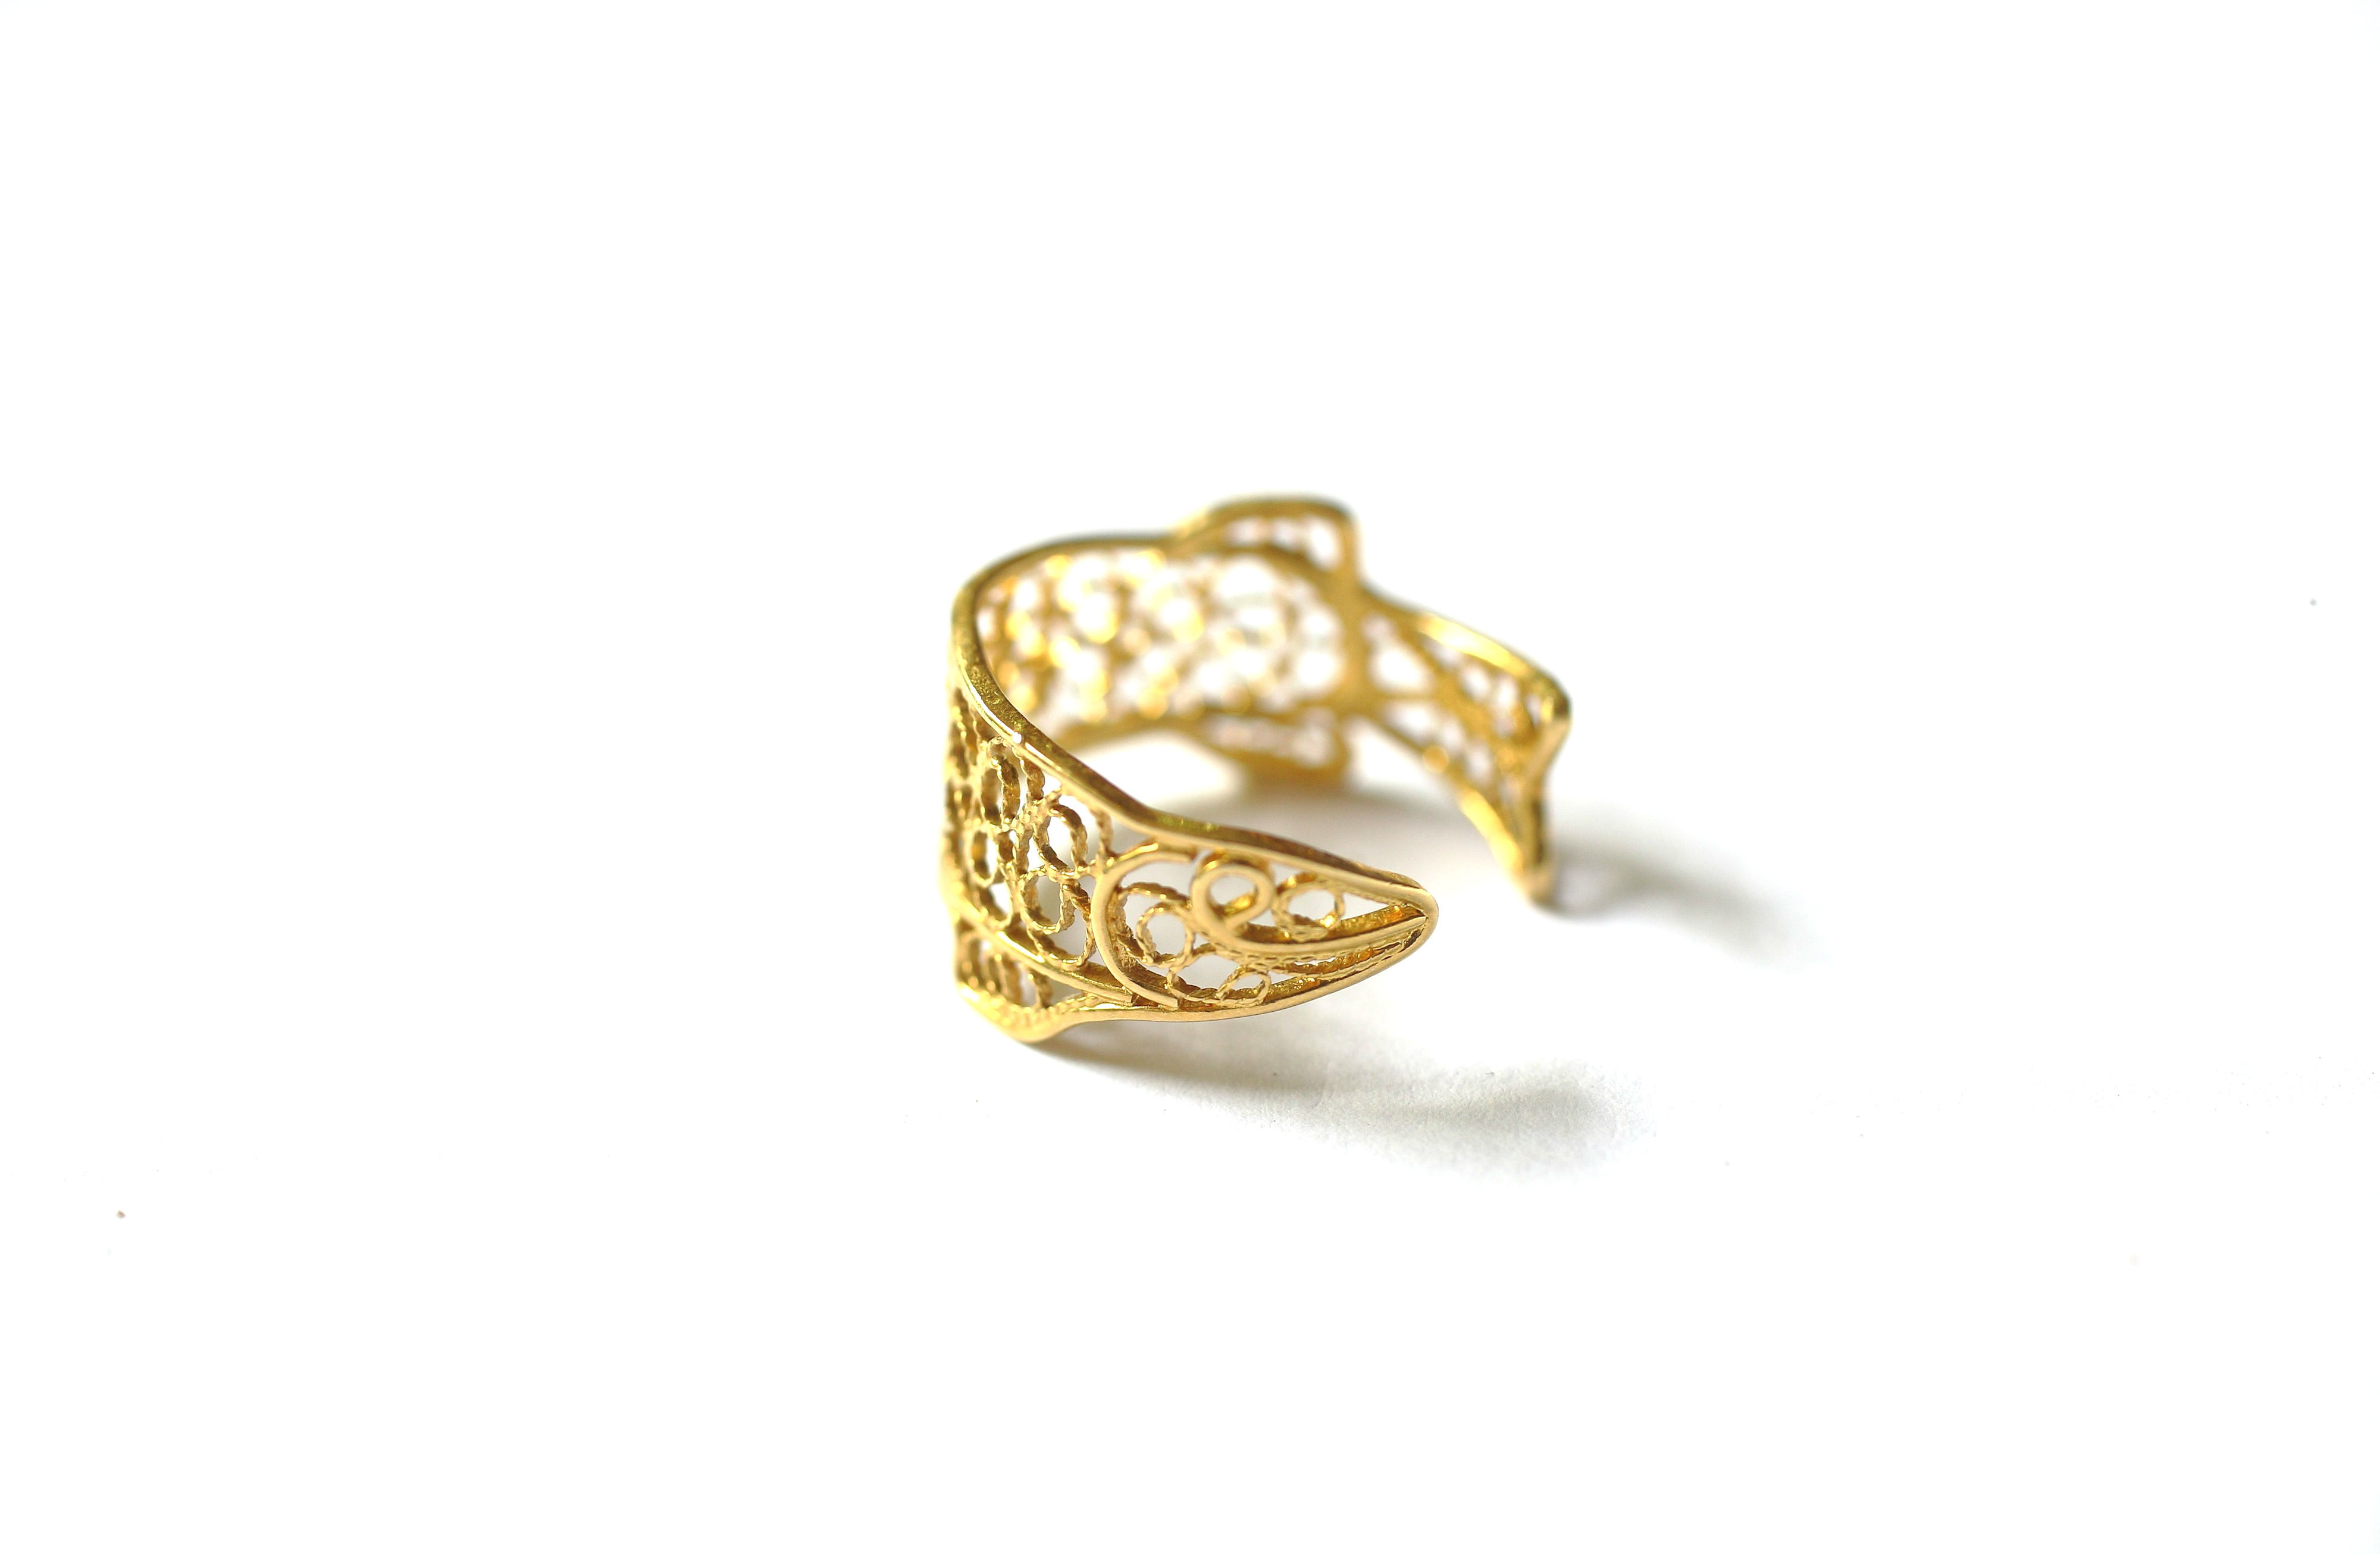 Gold fish arond your finger / B